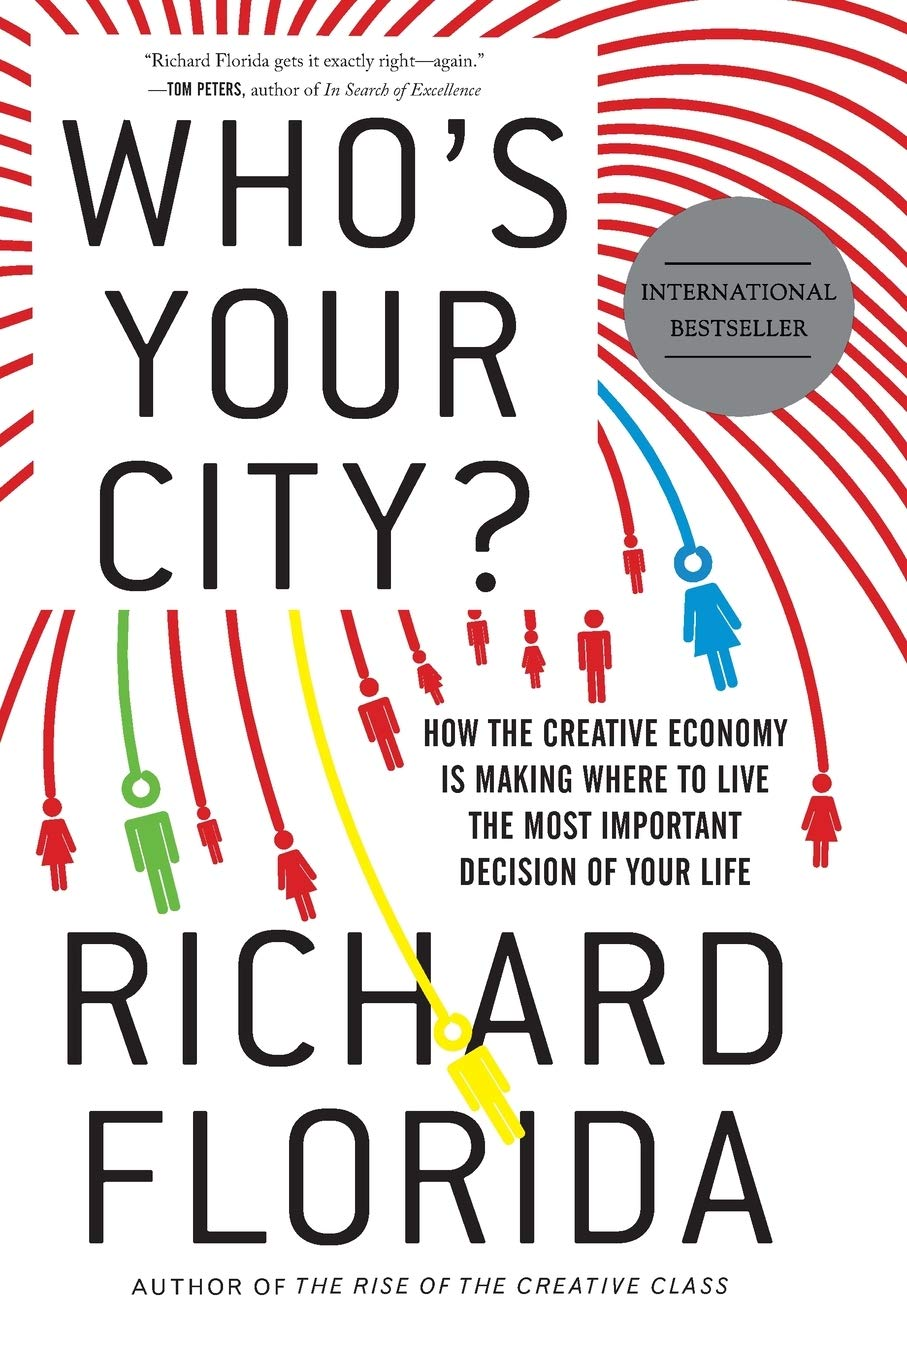 Who's Your City?: How the Creative Economy Is Making Where You Live the Most Important Decision of Your Life.